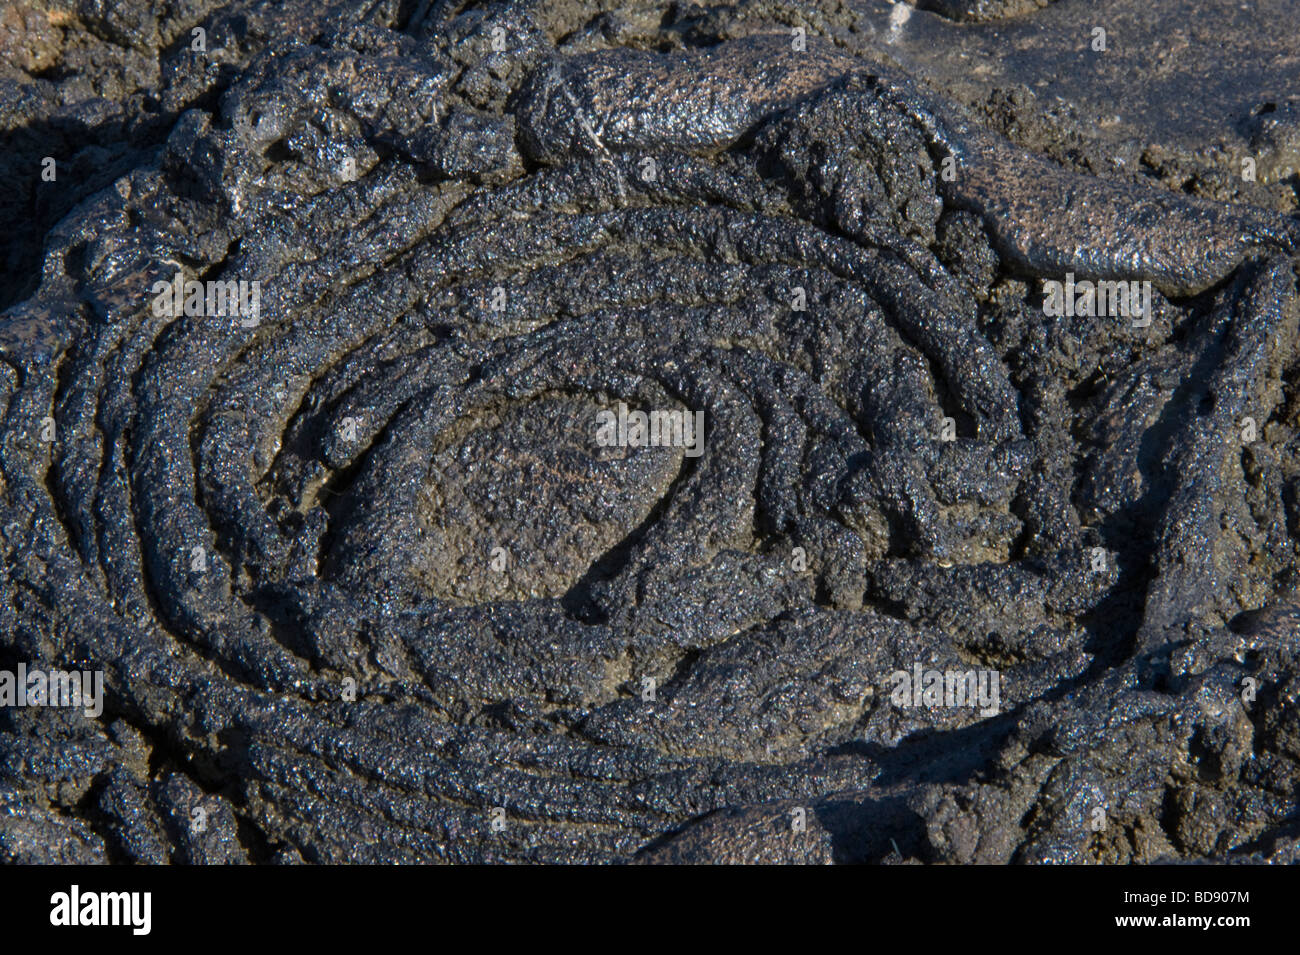 Hot Pahoehoe Lava Creates Ribbon-Like Shapes as it cools Sullivan Bay Santiago Island Galapagos Ecuador Pacific - Stock Image